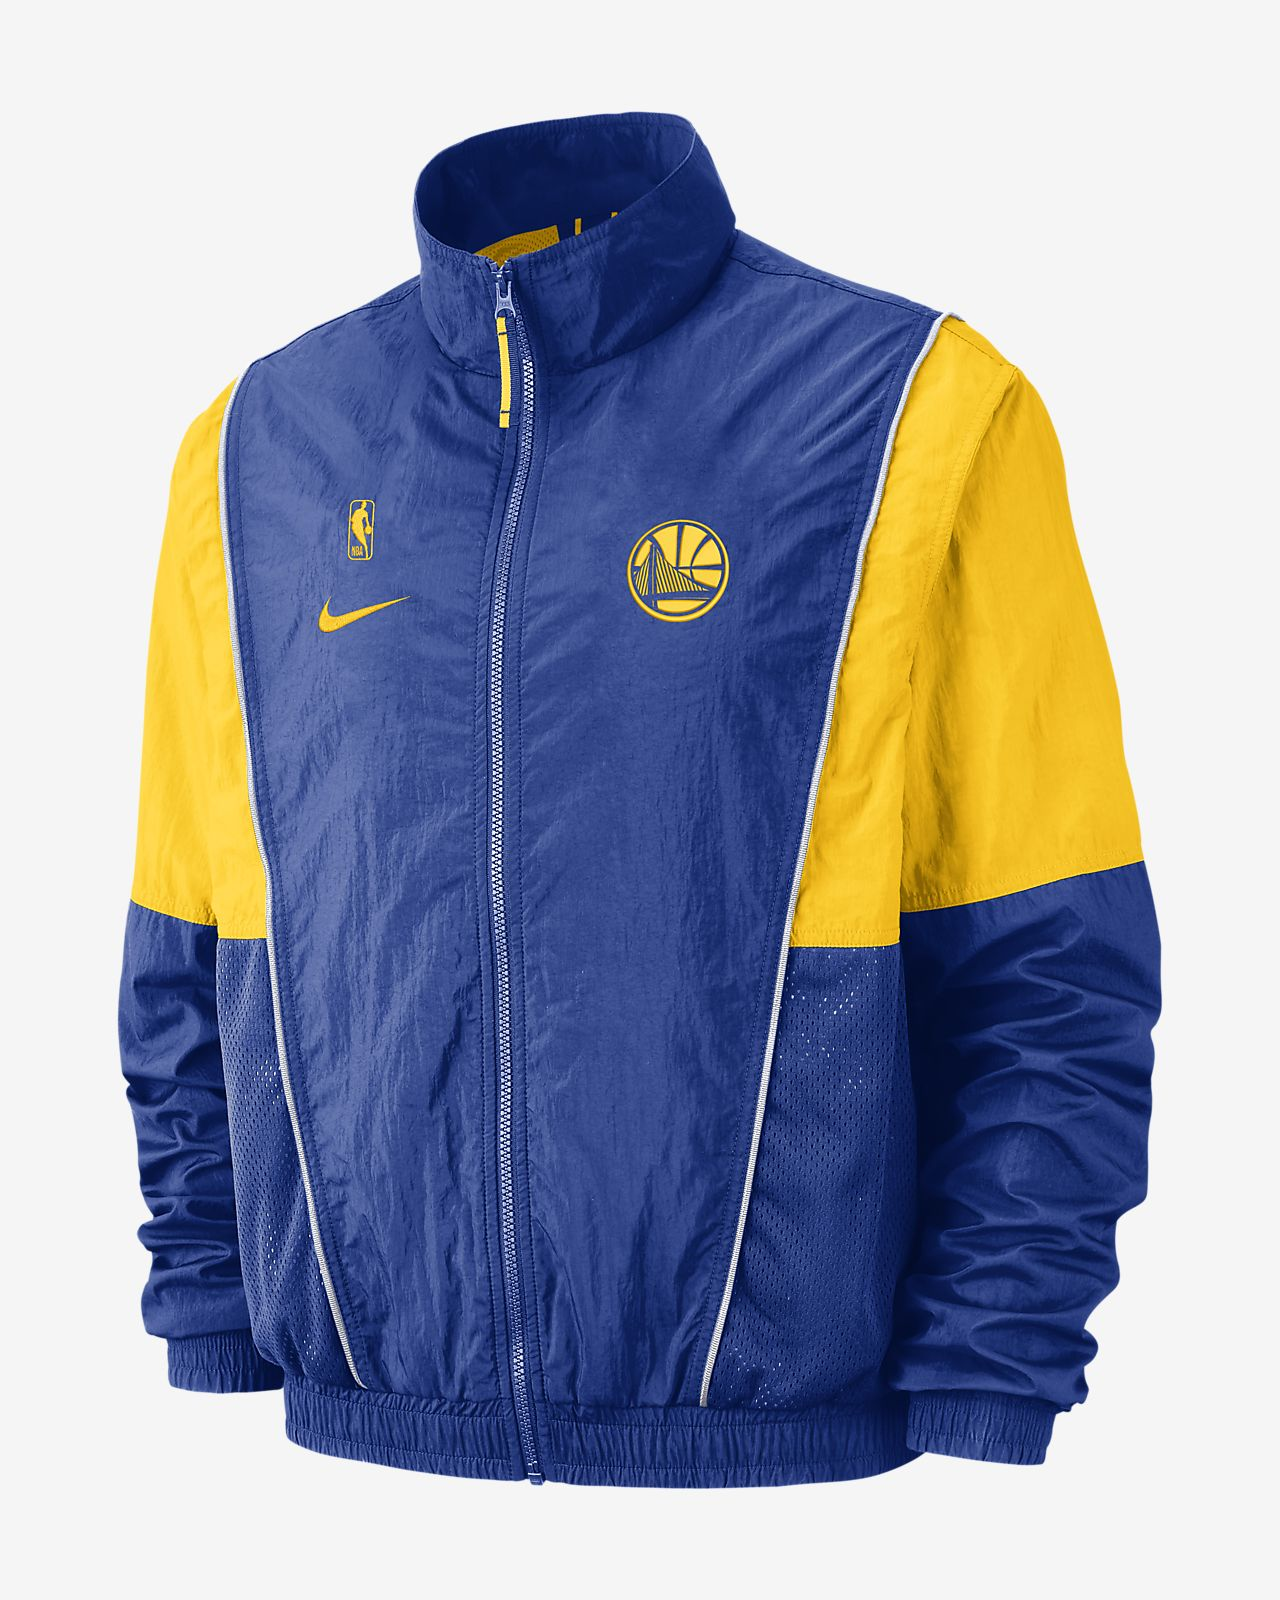 adefa87c082 Golden State Warriors Nike Men s NBA Tracksuit Jacket. Nike.com